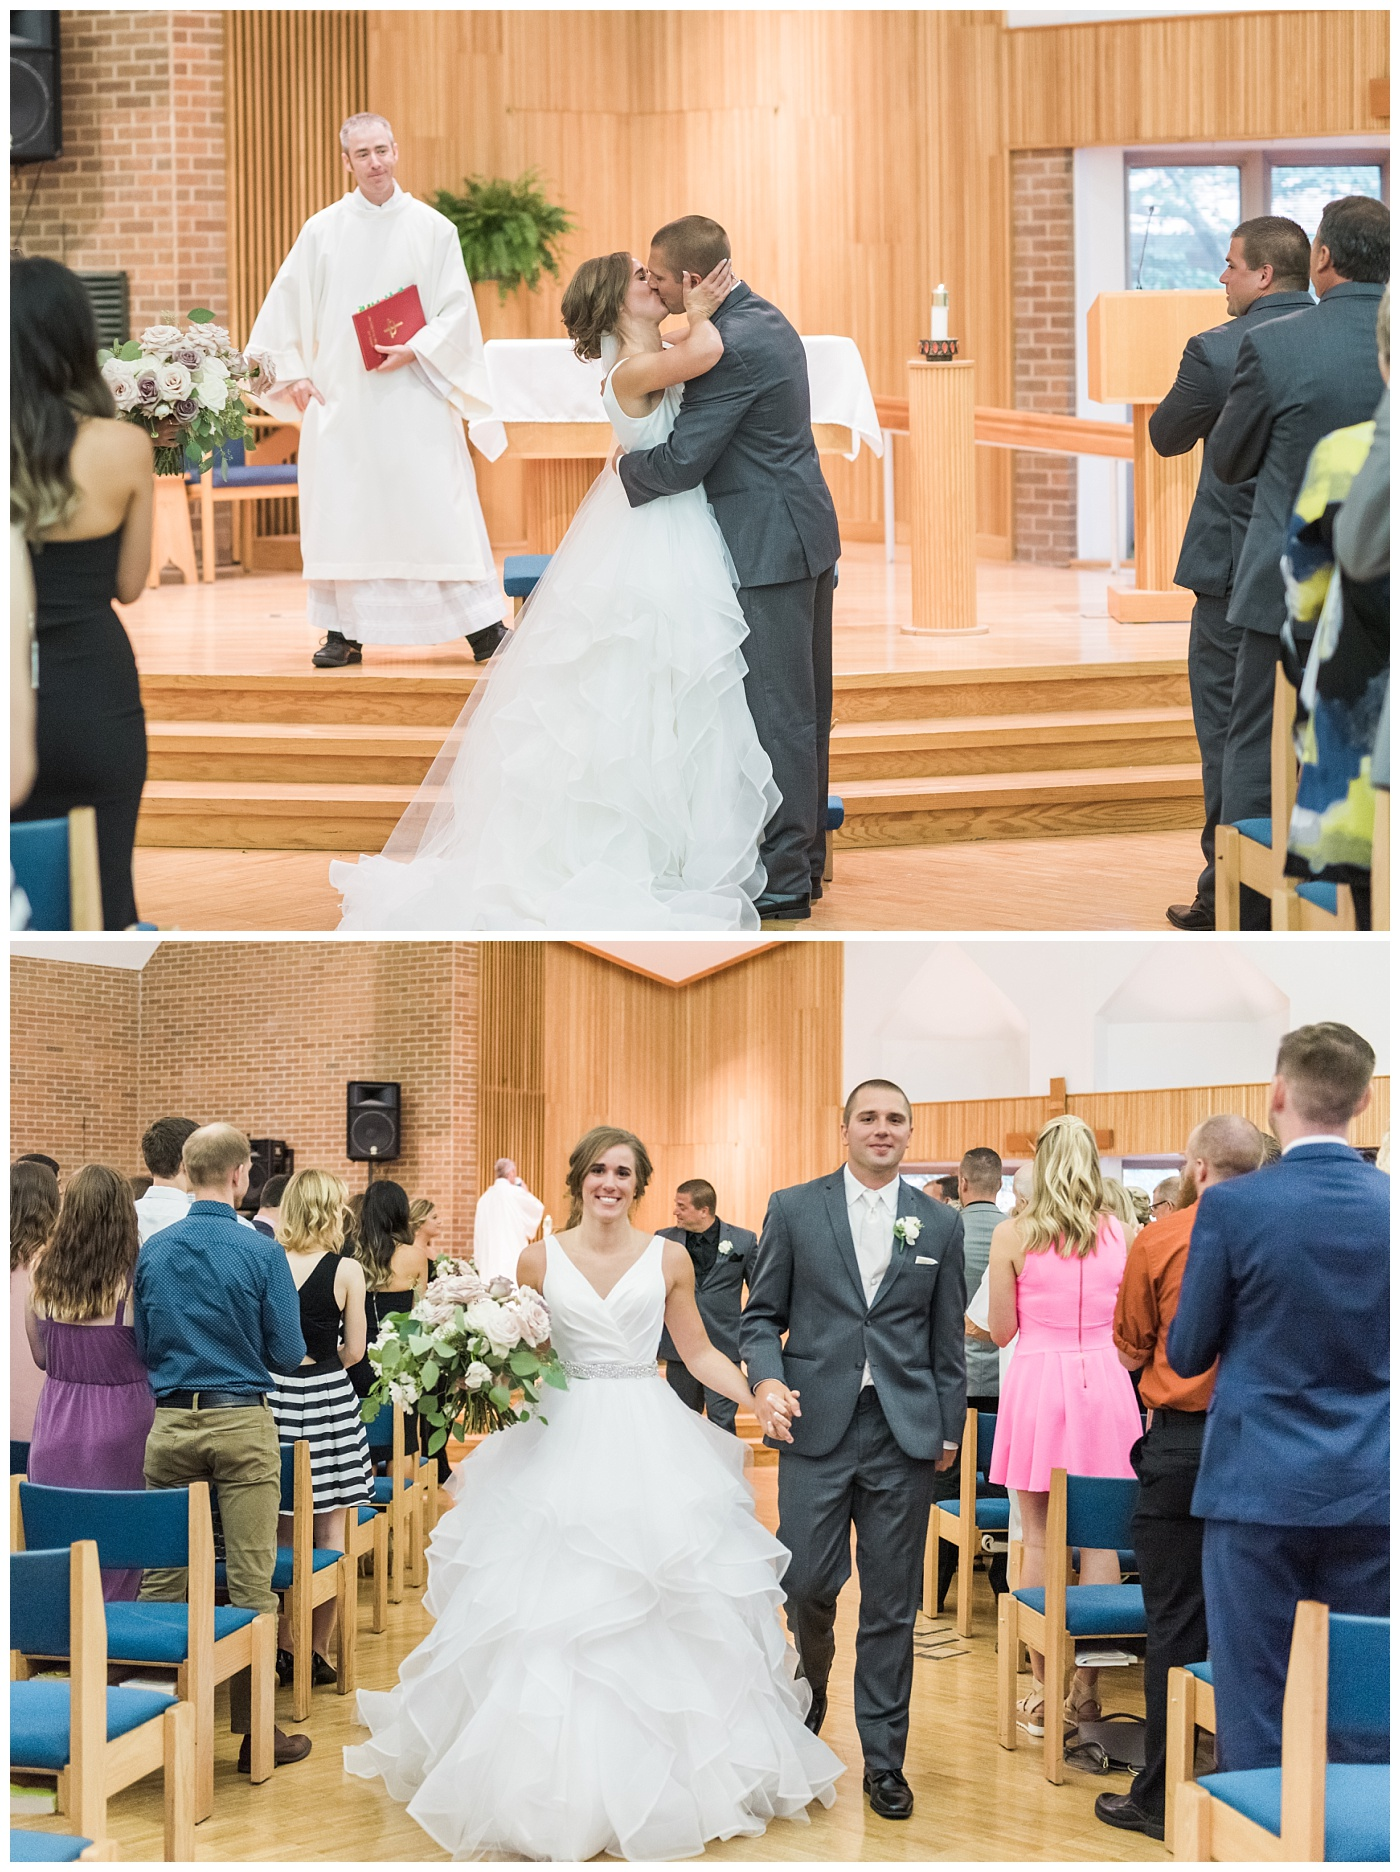 Stephanie Marie Photography Newman Catholic Center Ceremony Bella Sala Reception Tiffin Iowa City Wedding Photographer Chelsey Justin Meyers_0025-1.jpg